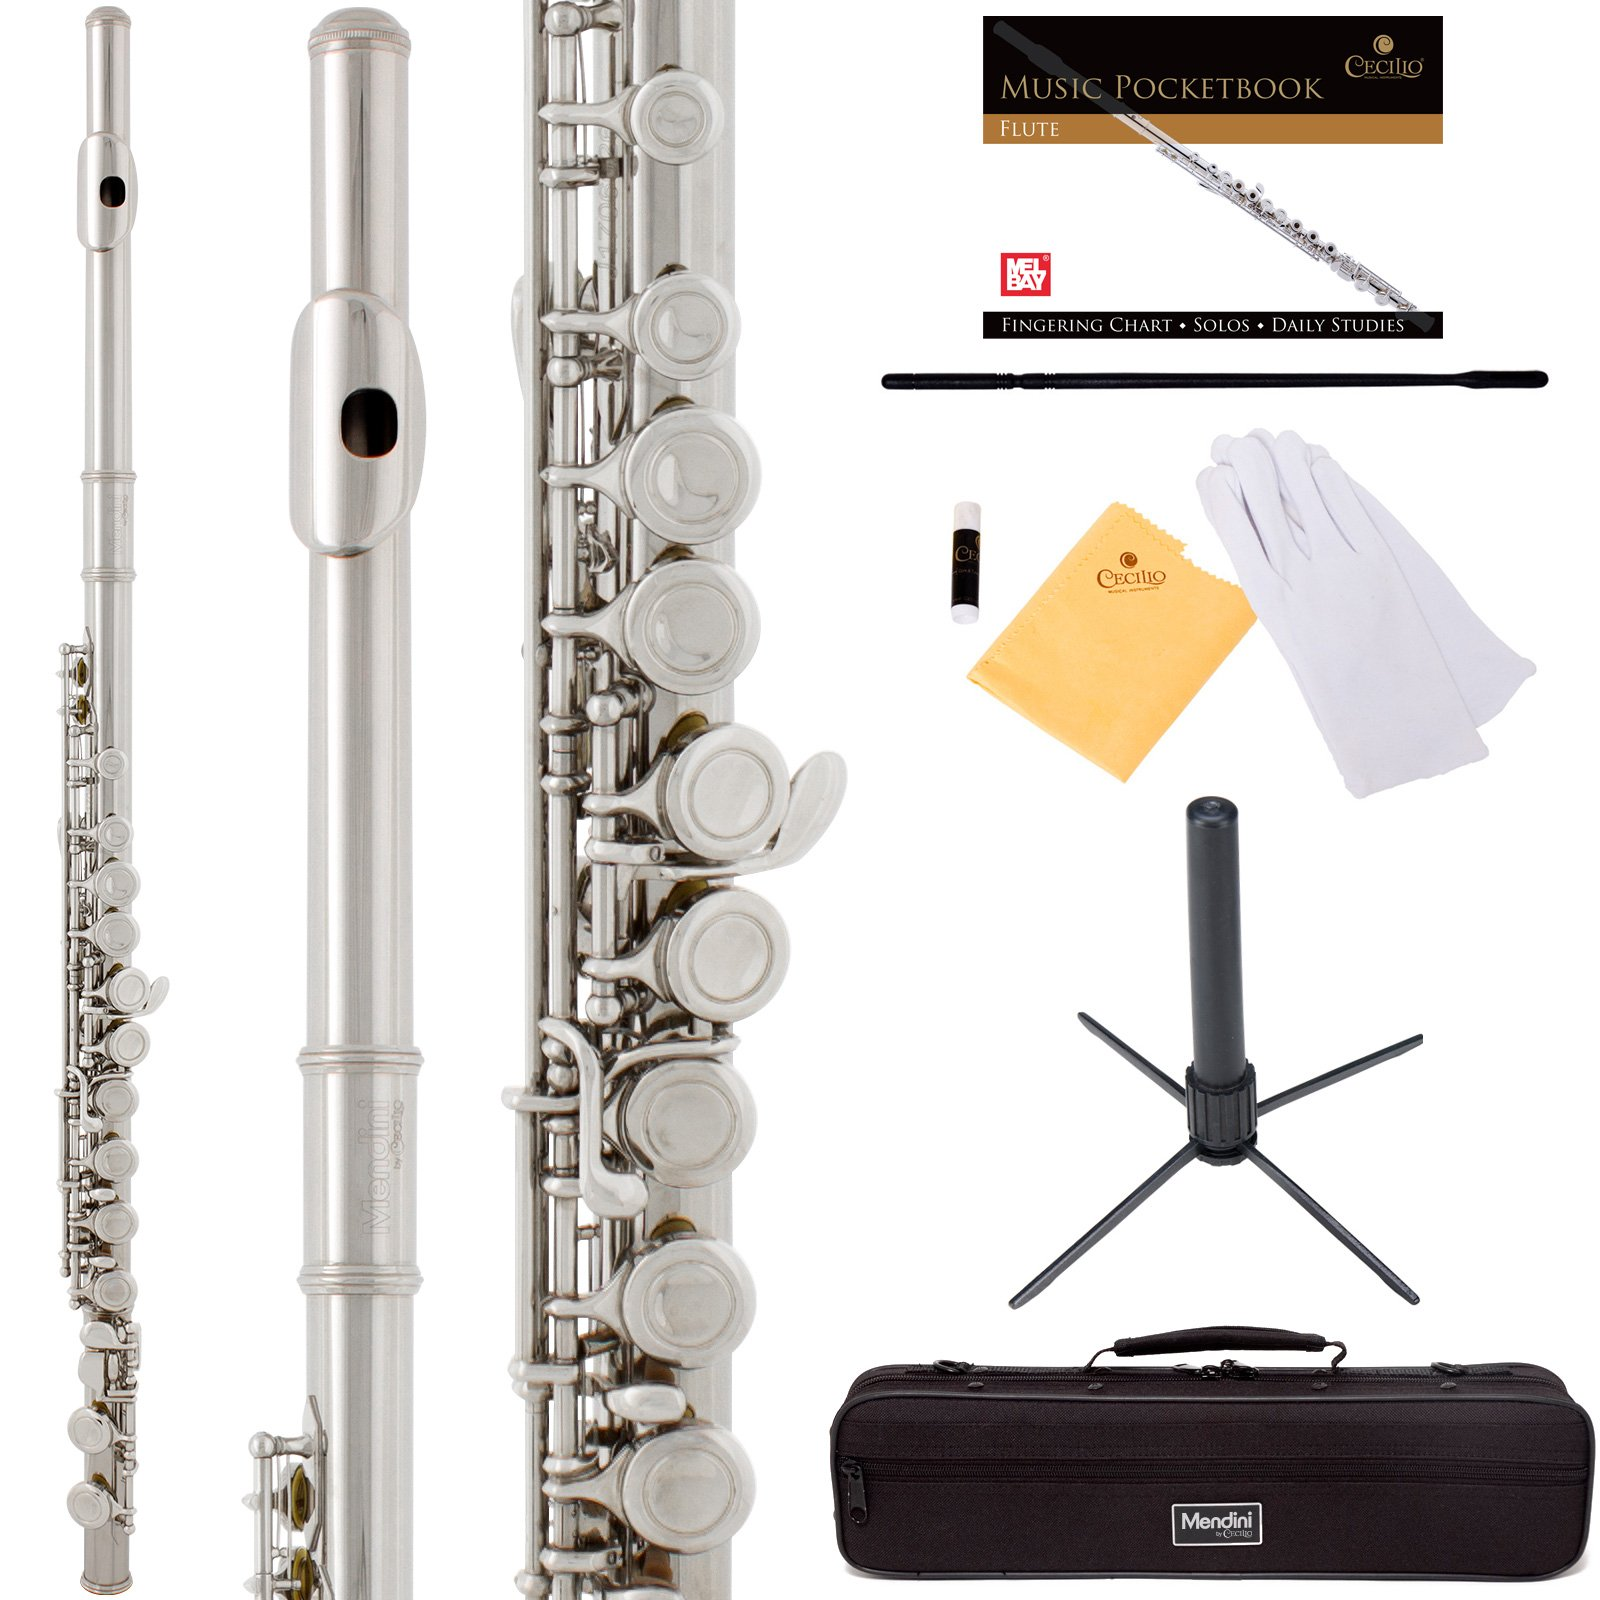 Mendini by Cecilio Premium Grade Closed Hole C Flute with Stand, Book, Deluxe Case and Warranty (Nickel Plated)